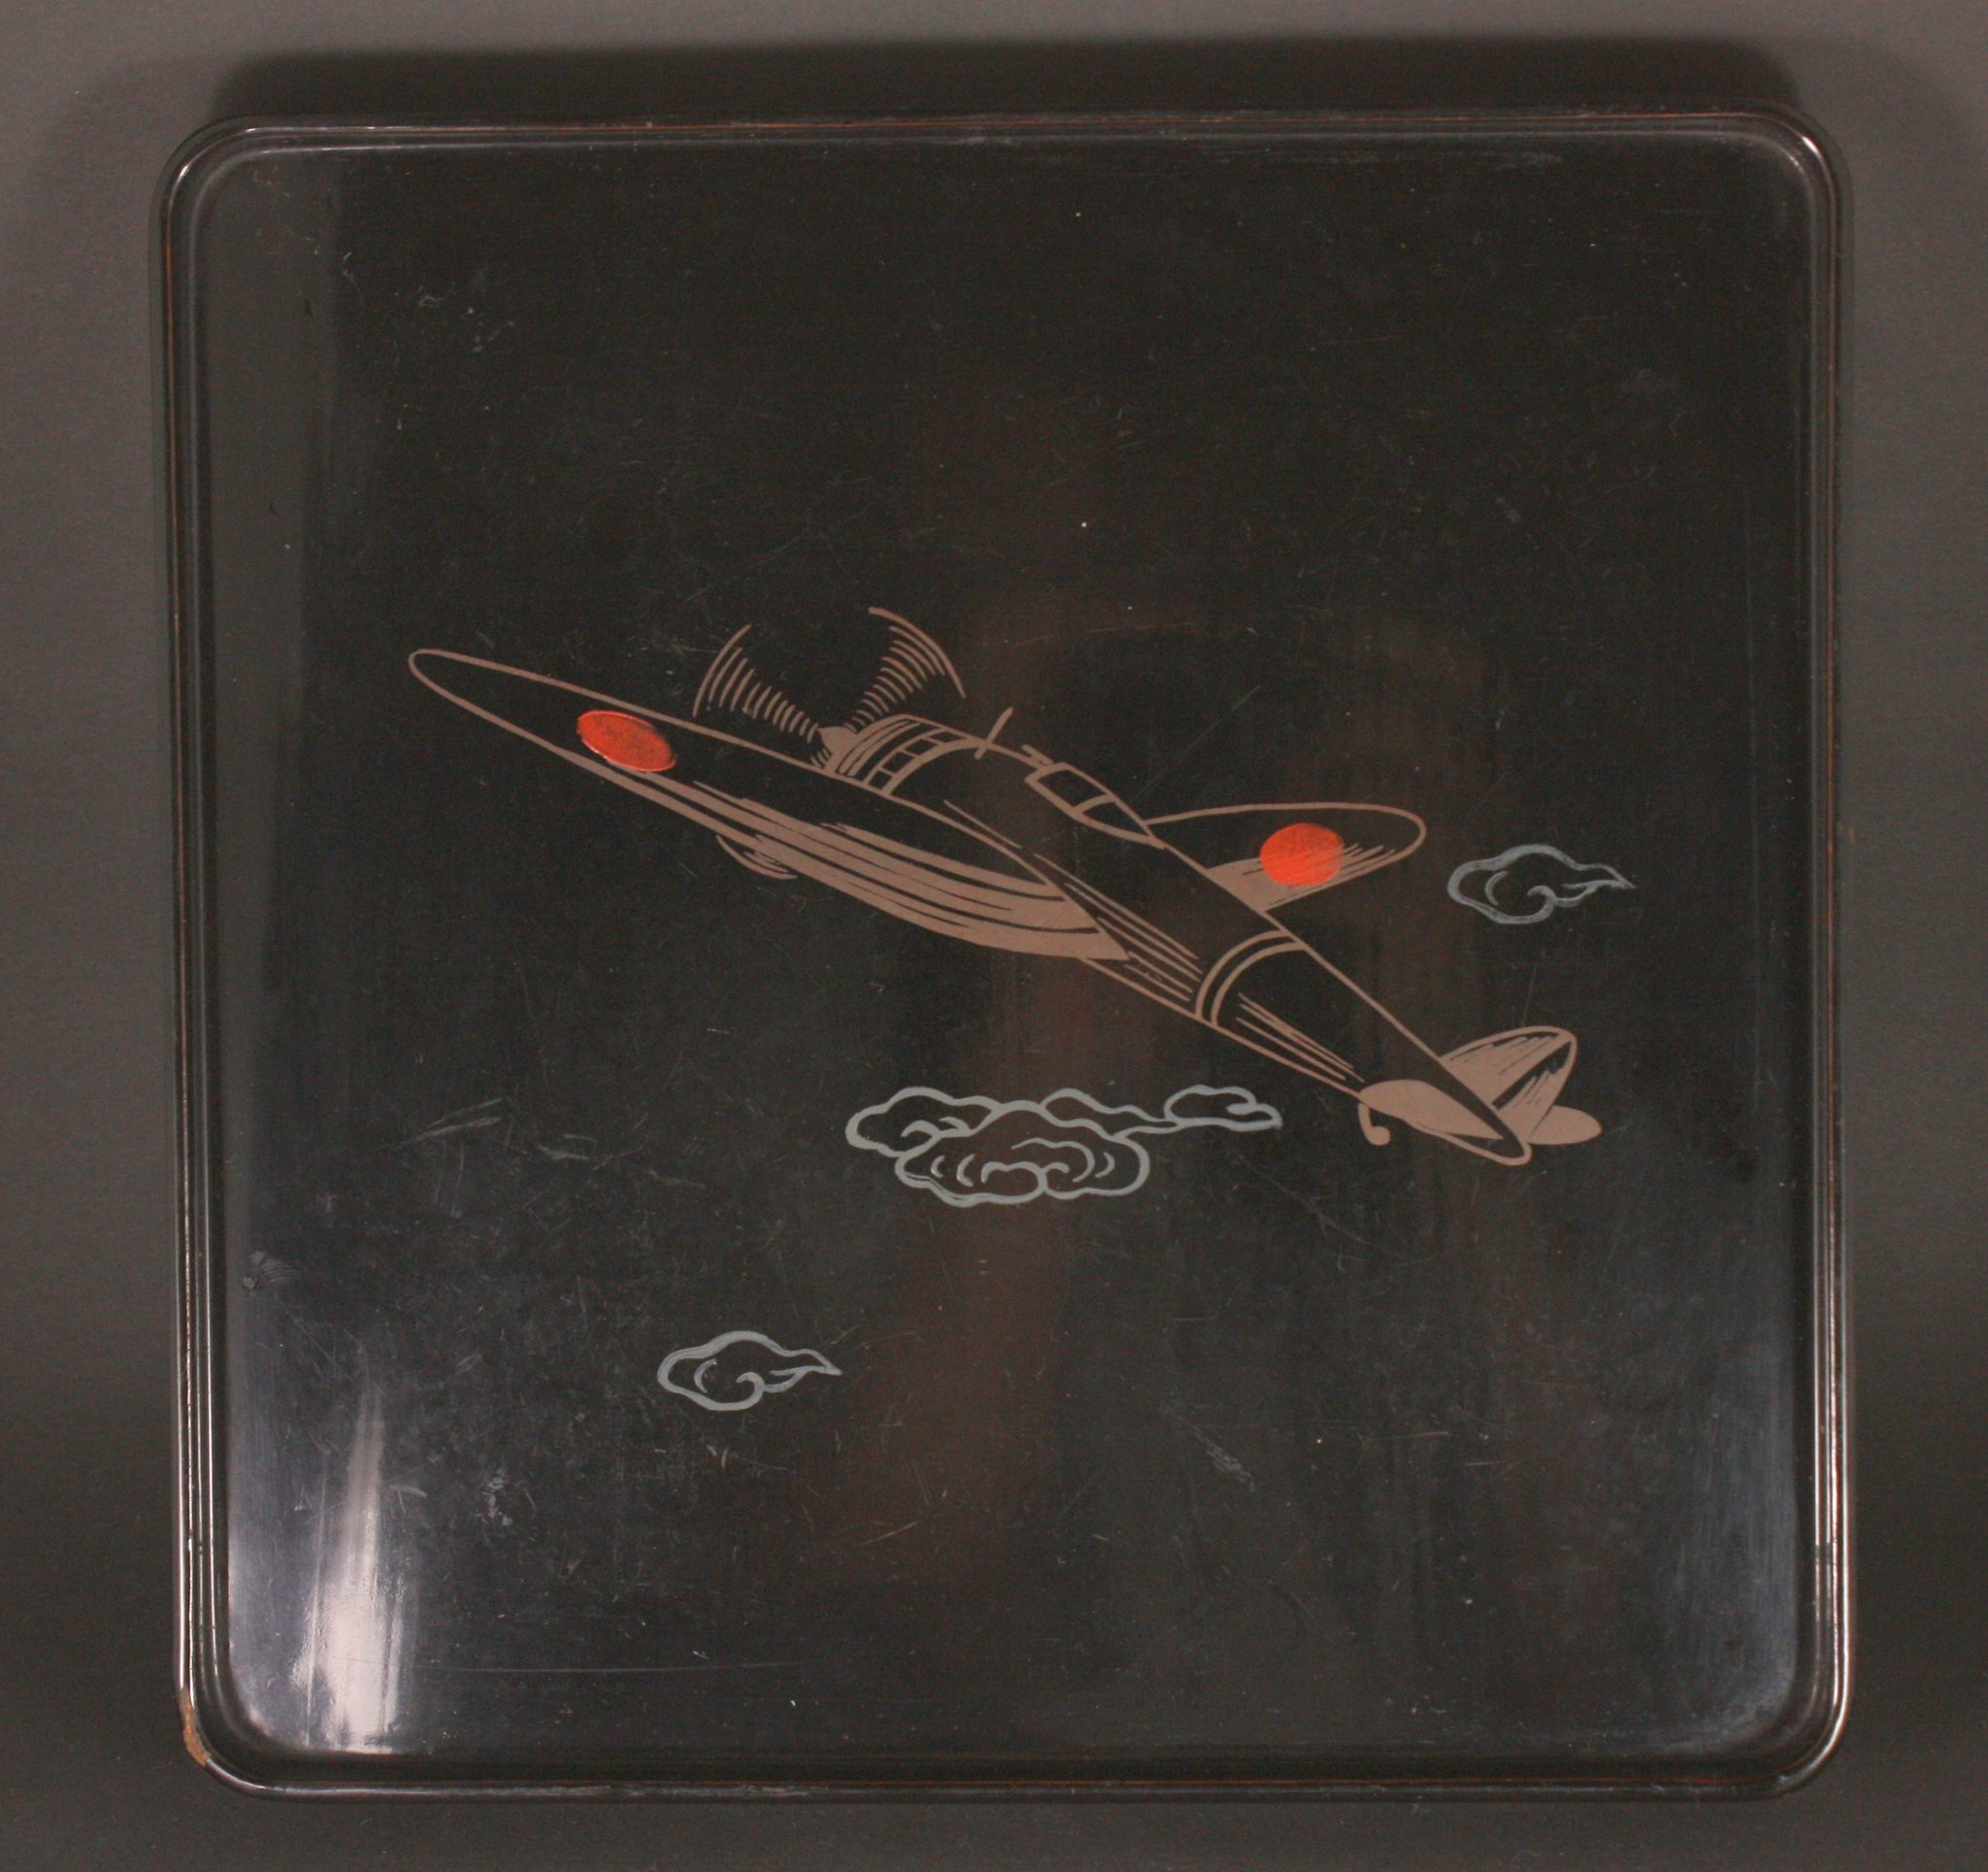 Very Rare Antique Japanese Military WW2 1943 Fighter Plane Army Lacquer Tray